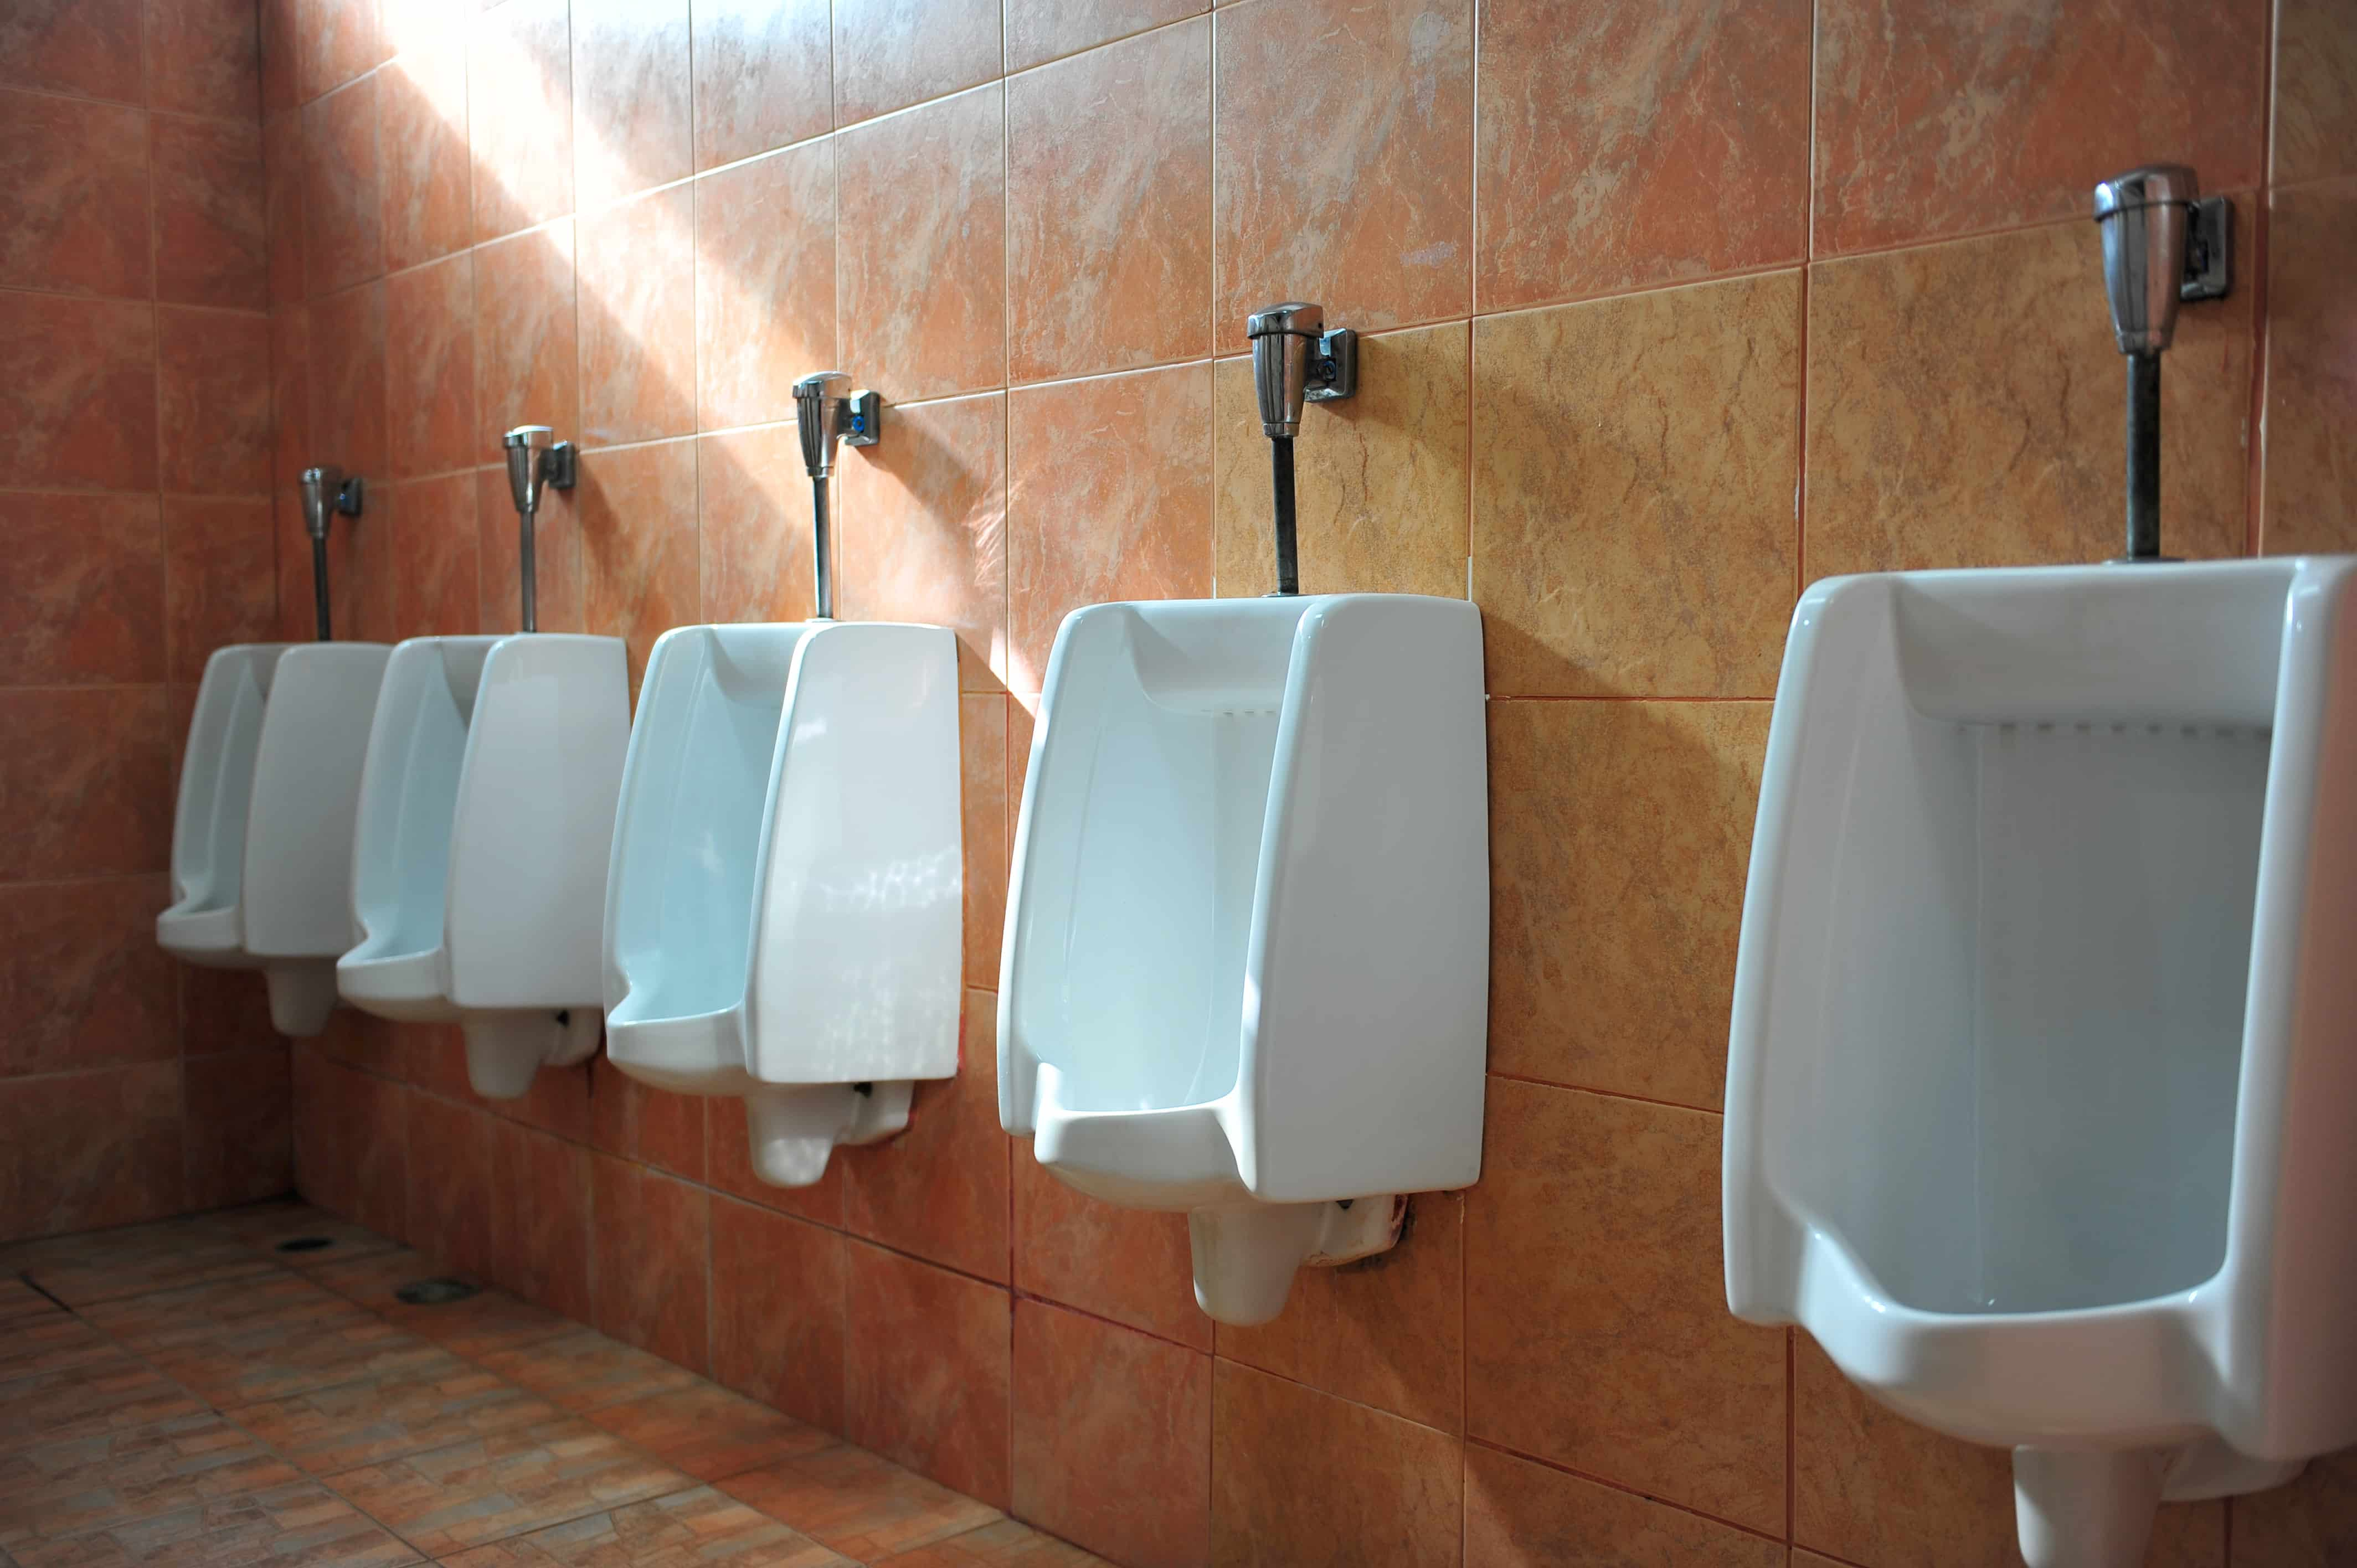 Elementary school bathroom urinal - People I Don T Even Know What To Do With The World These Days I Really Don T Case In Point A Teacher In Florida Was Arrested After She Made A